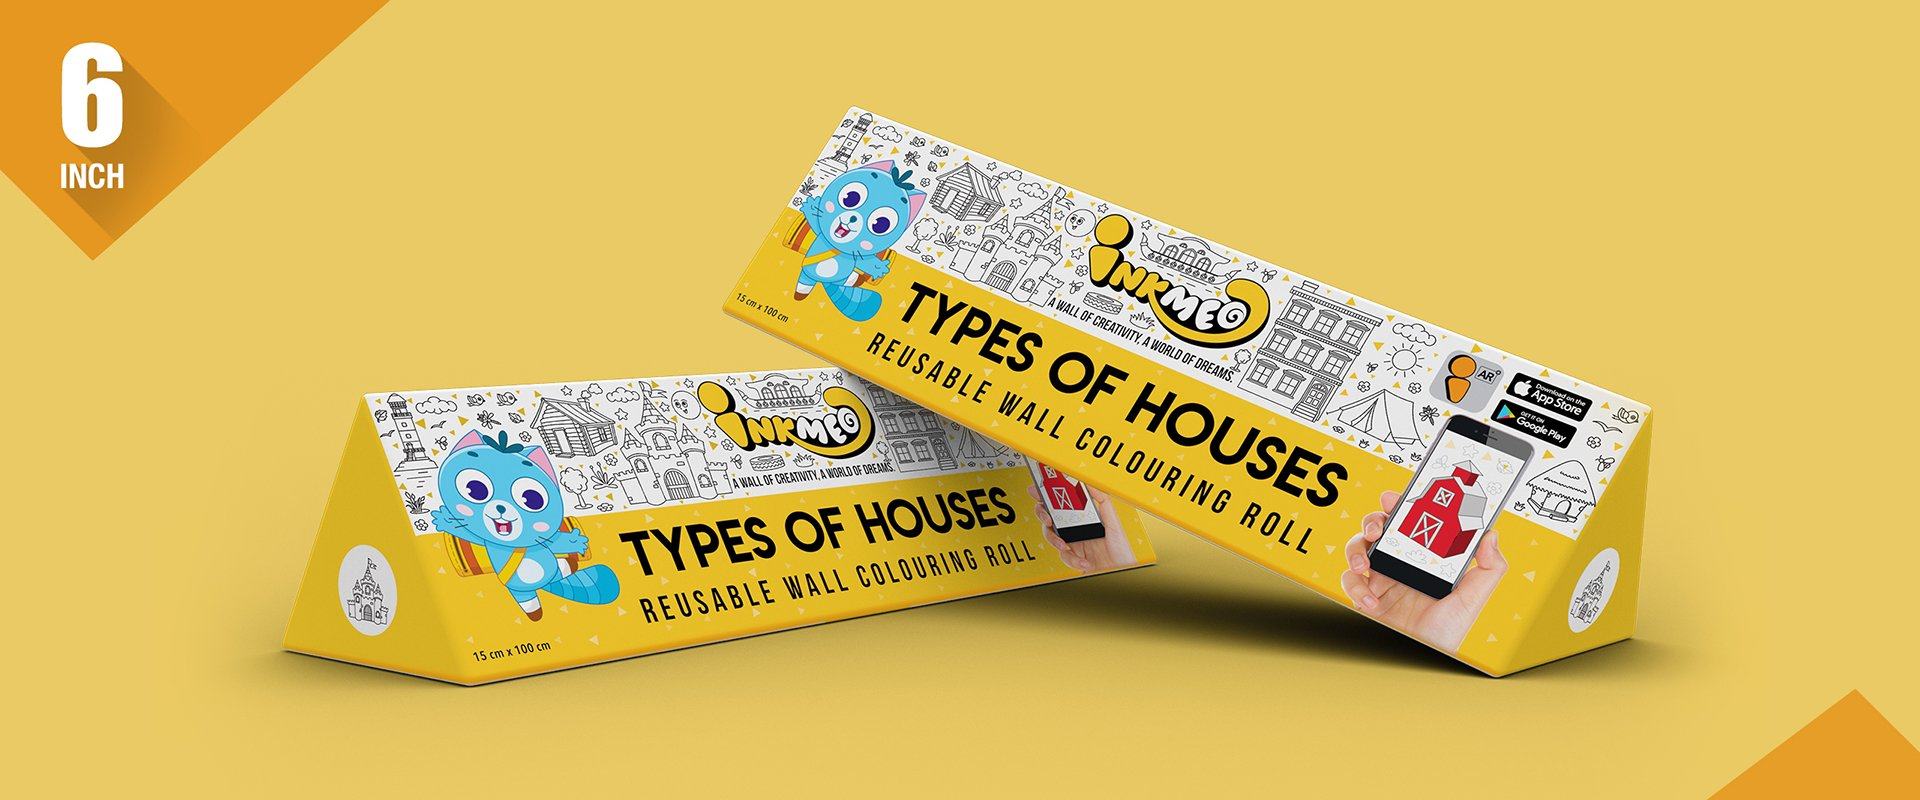 Types of Houses Colouring Roll (6 inch)